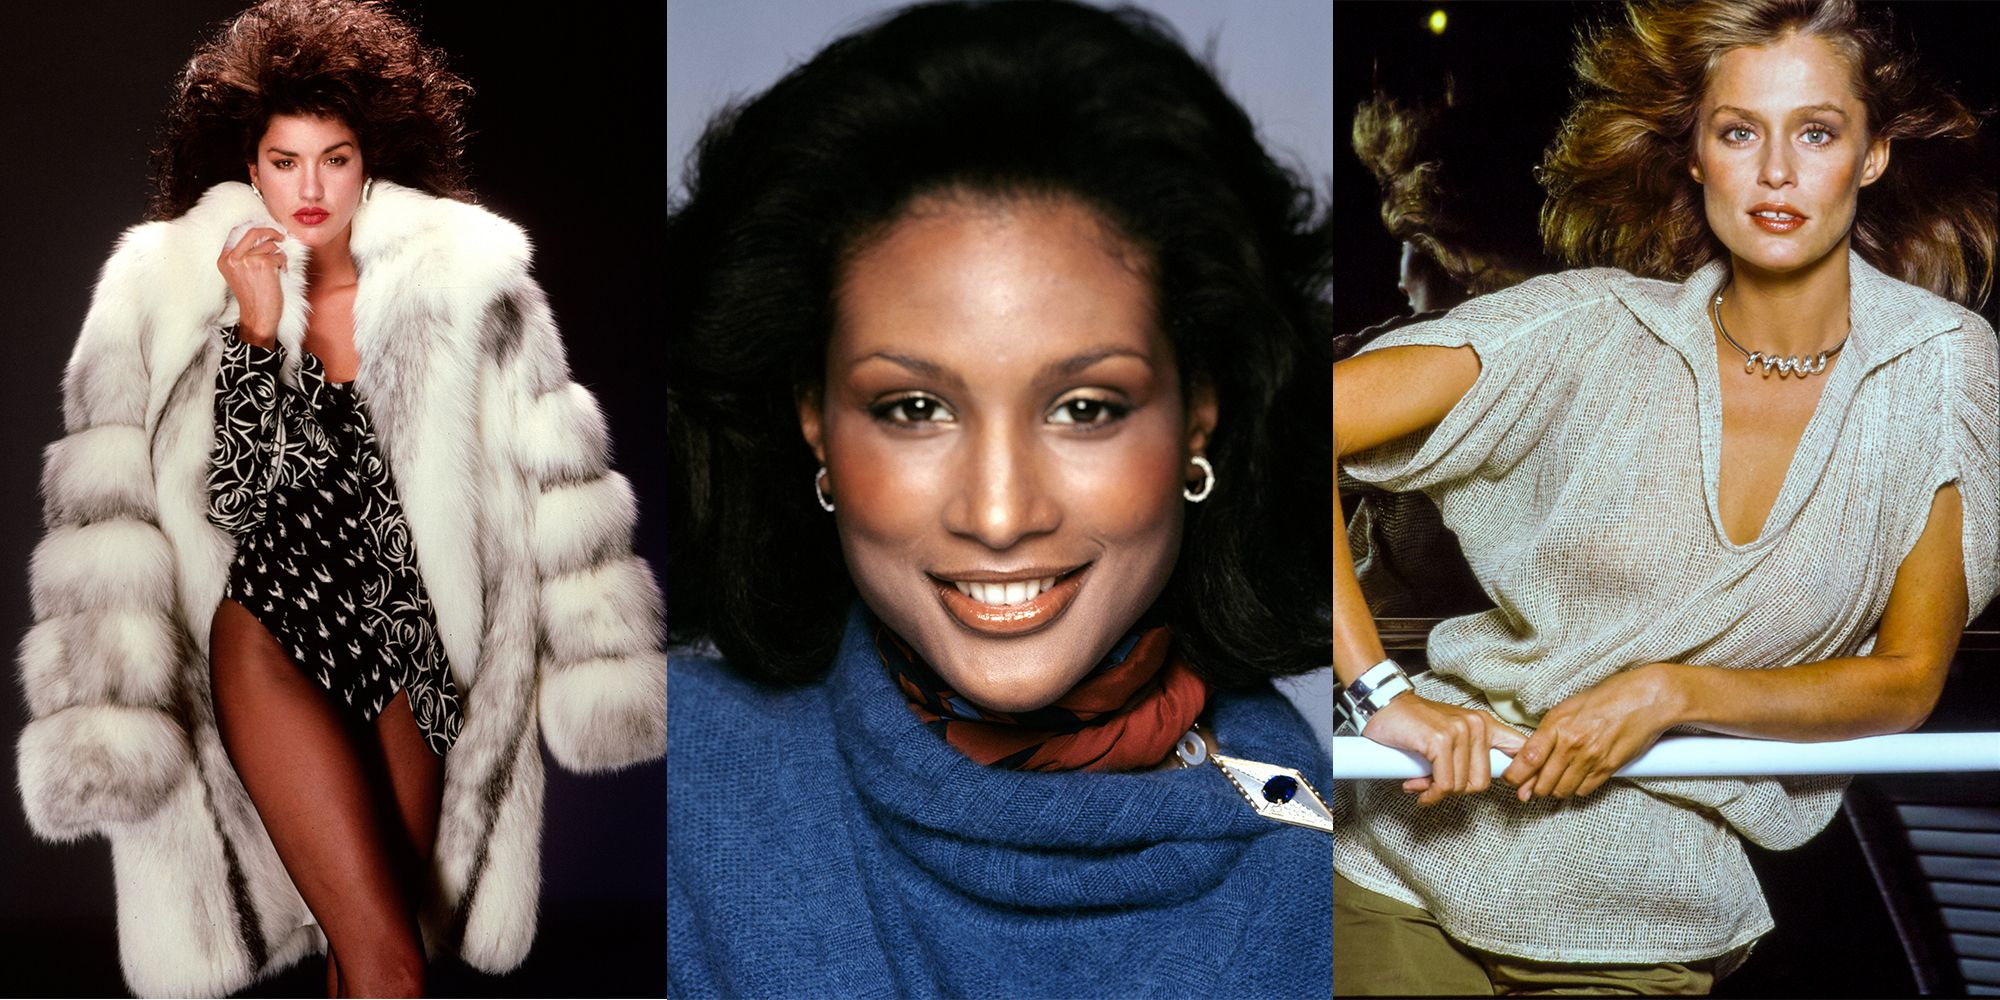 Supermodels of the 1970s